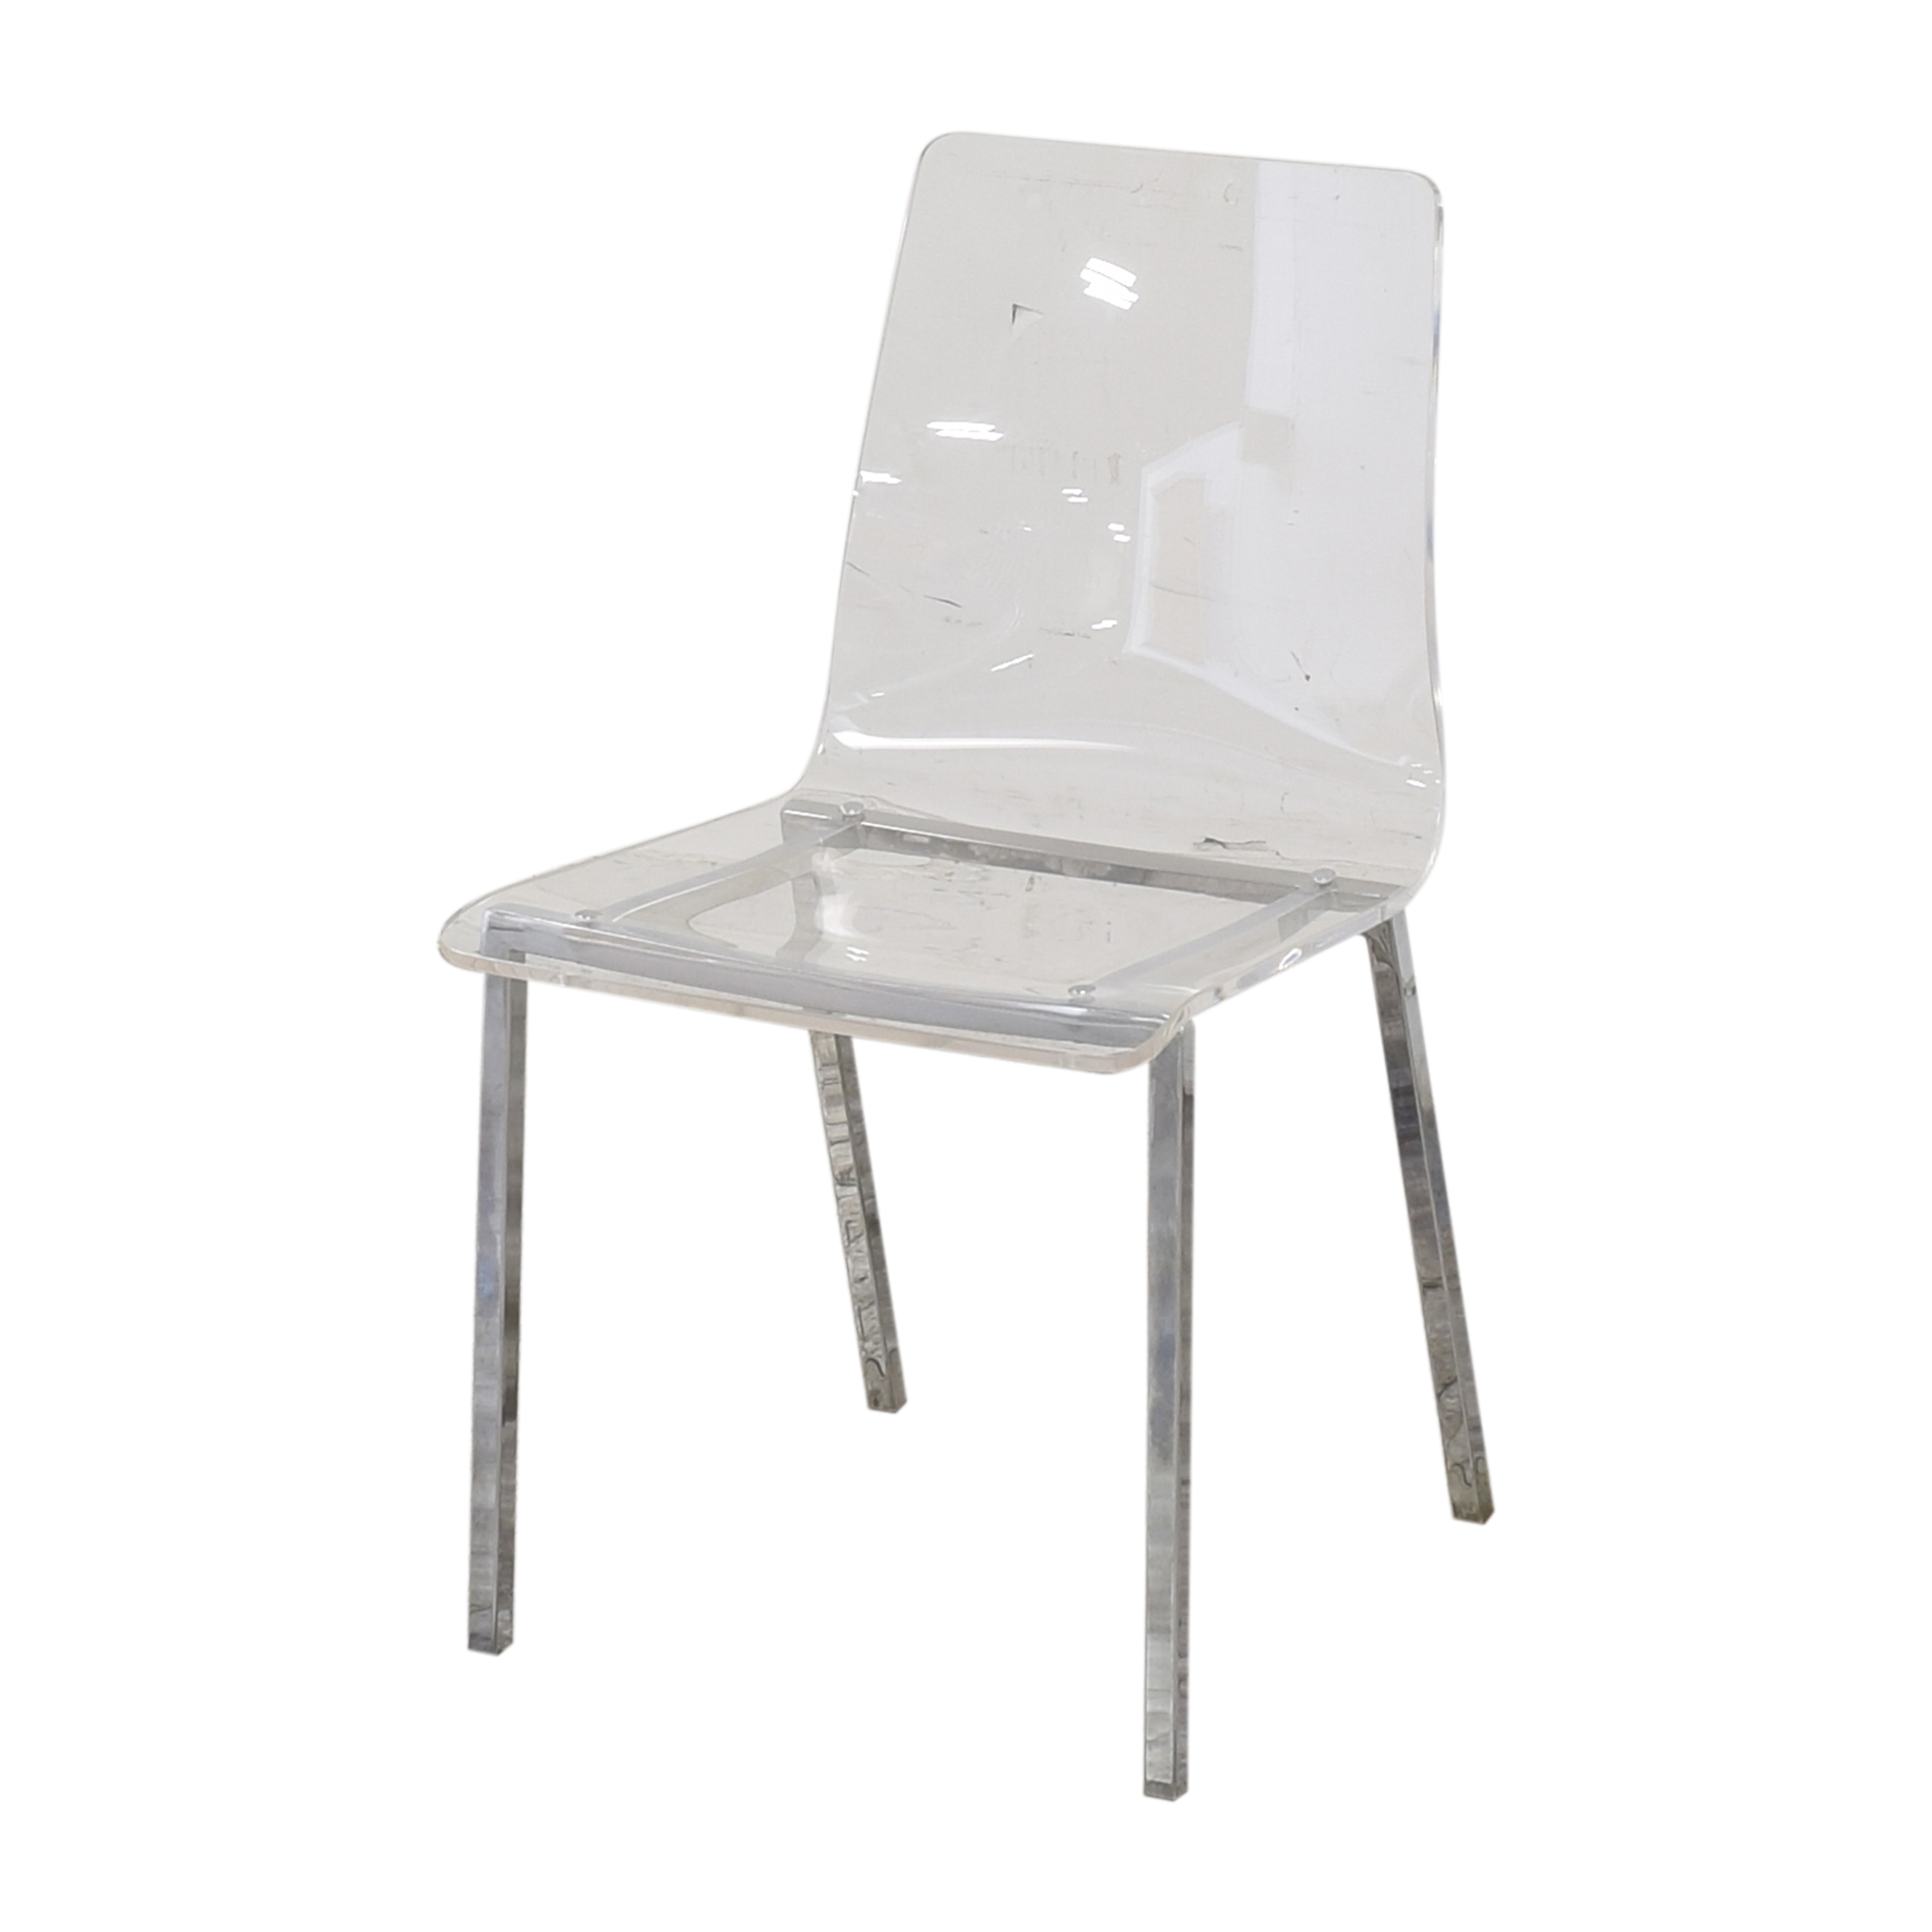 shop CB2 CB2 Vapor Acrylic Clear Dining Room Chairs online